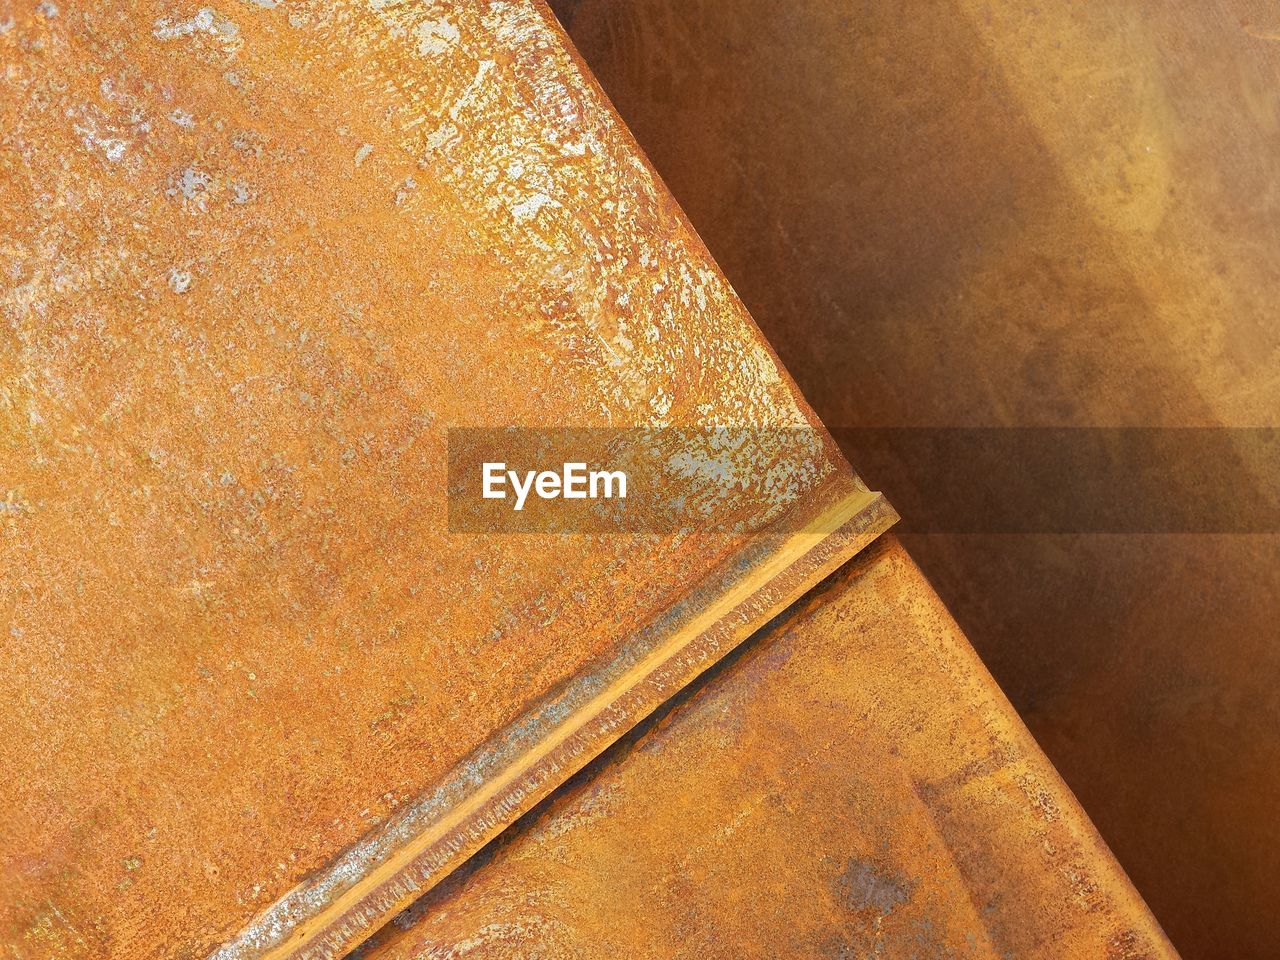 no people, close-up, high angle view, full frame, brown, metal, indoors, backgrounds, rusty, architecture, day, wood - material, pattern, orange color, paper, still life, textured, built structure, textile